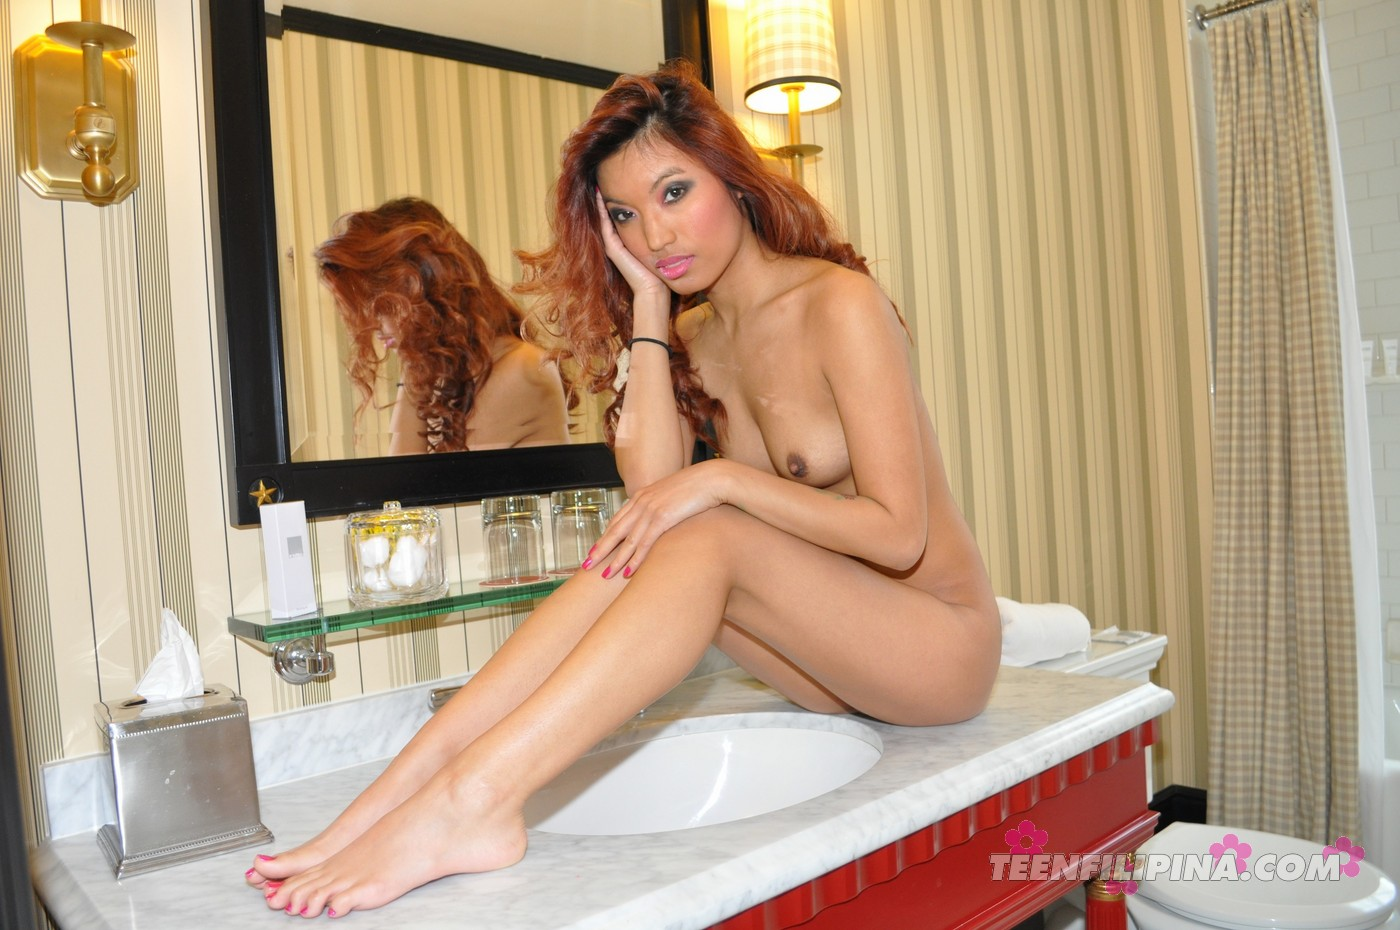 Hot asian import models nude